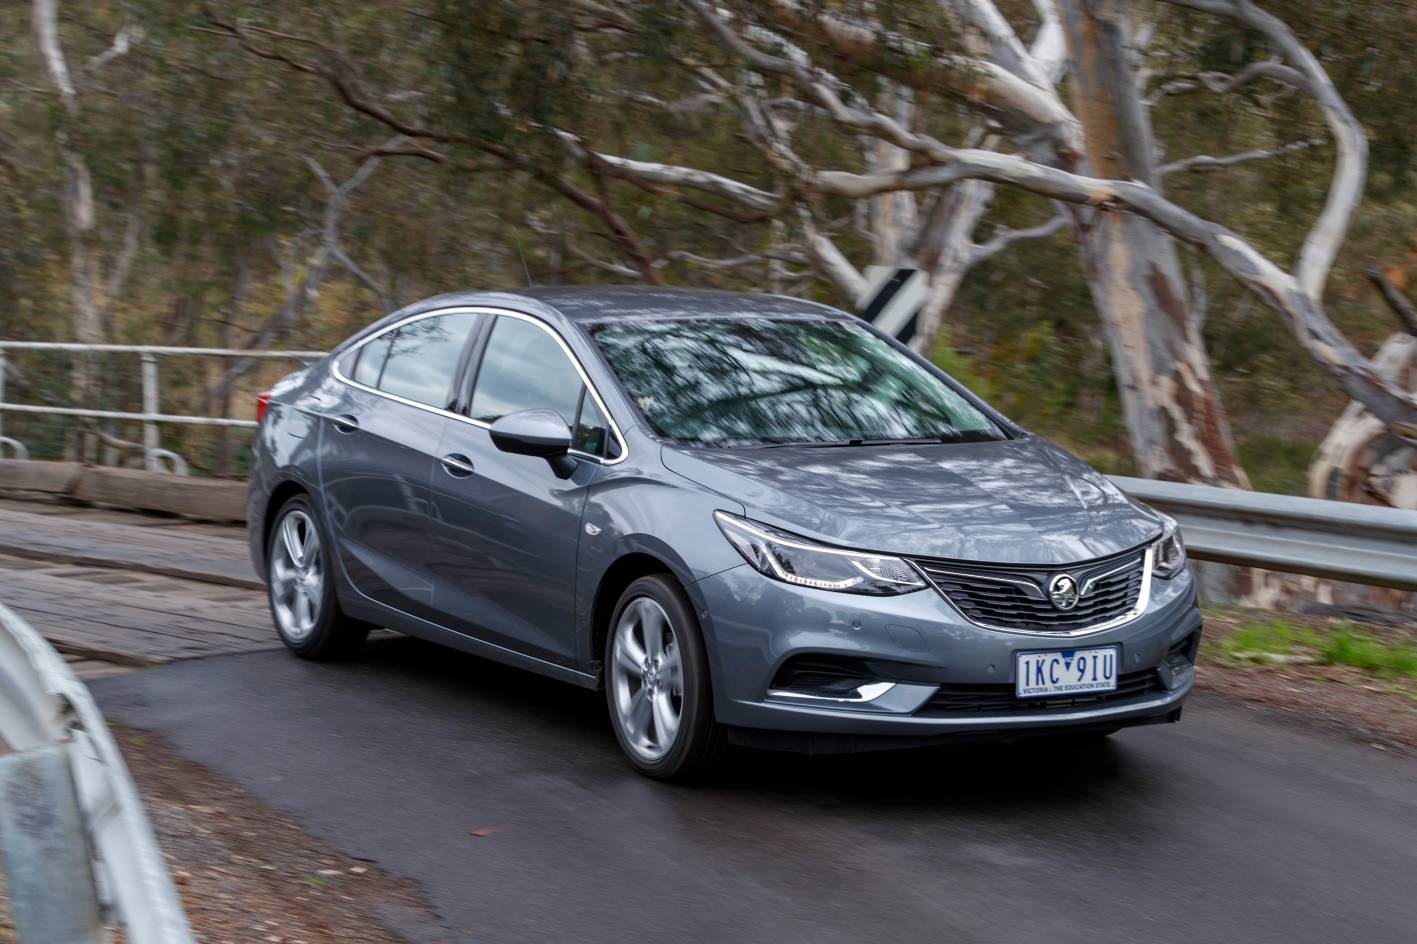 Astra's on-road manners are quite good, but Holden's customer support is appalling, a fact recently verified by both Holden and the ACCC